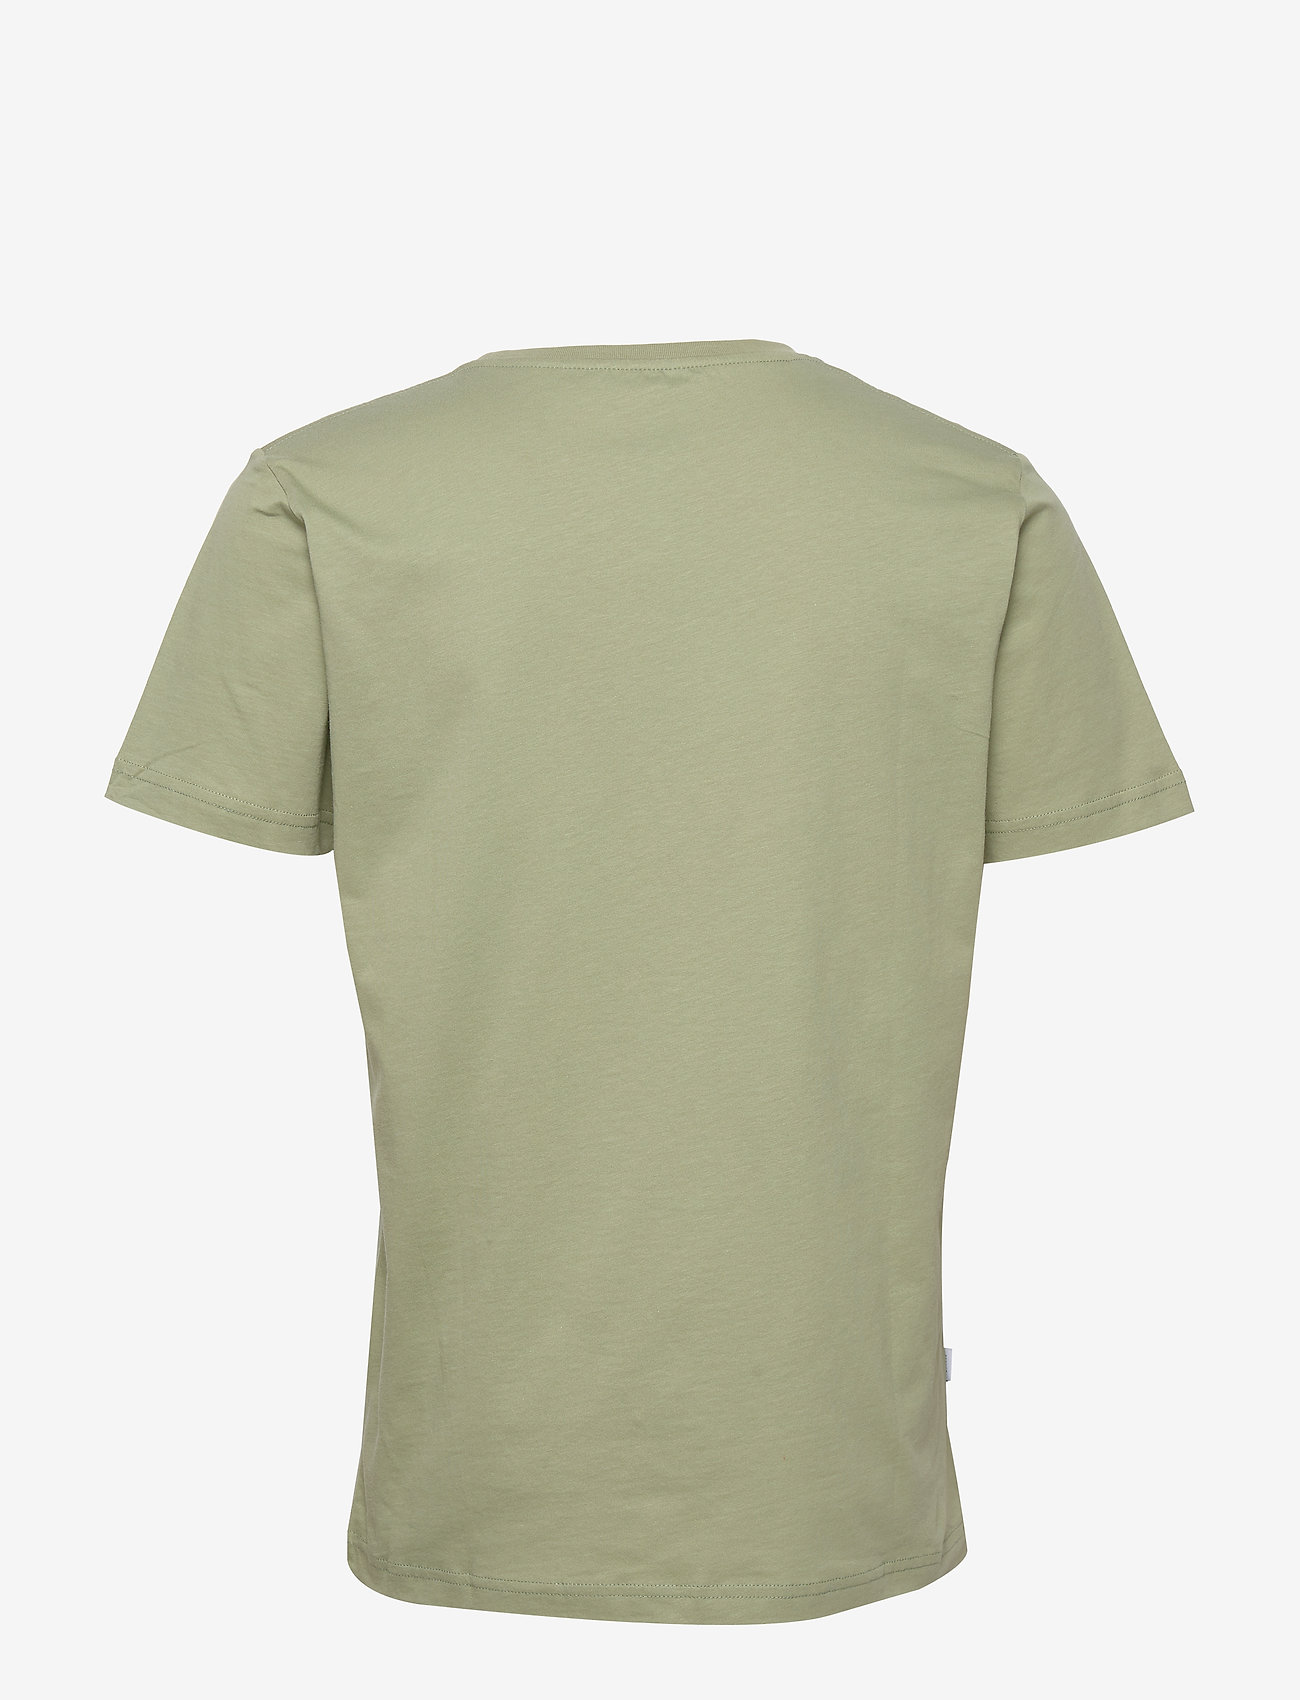 Makia - Scope T-Shirt - kurzärmelig - olive - 1